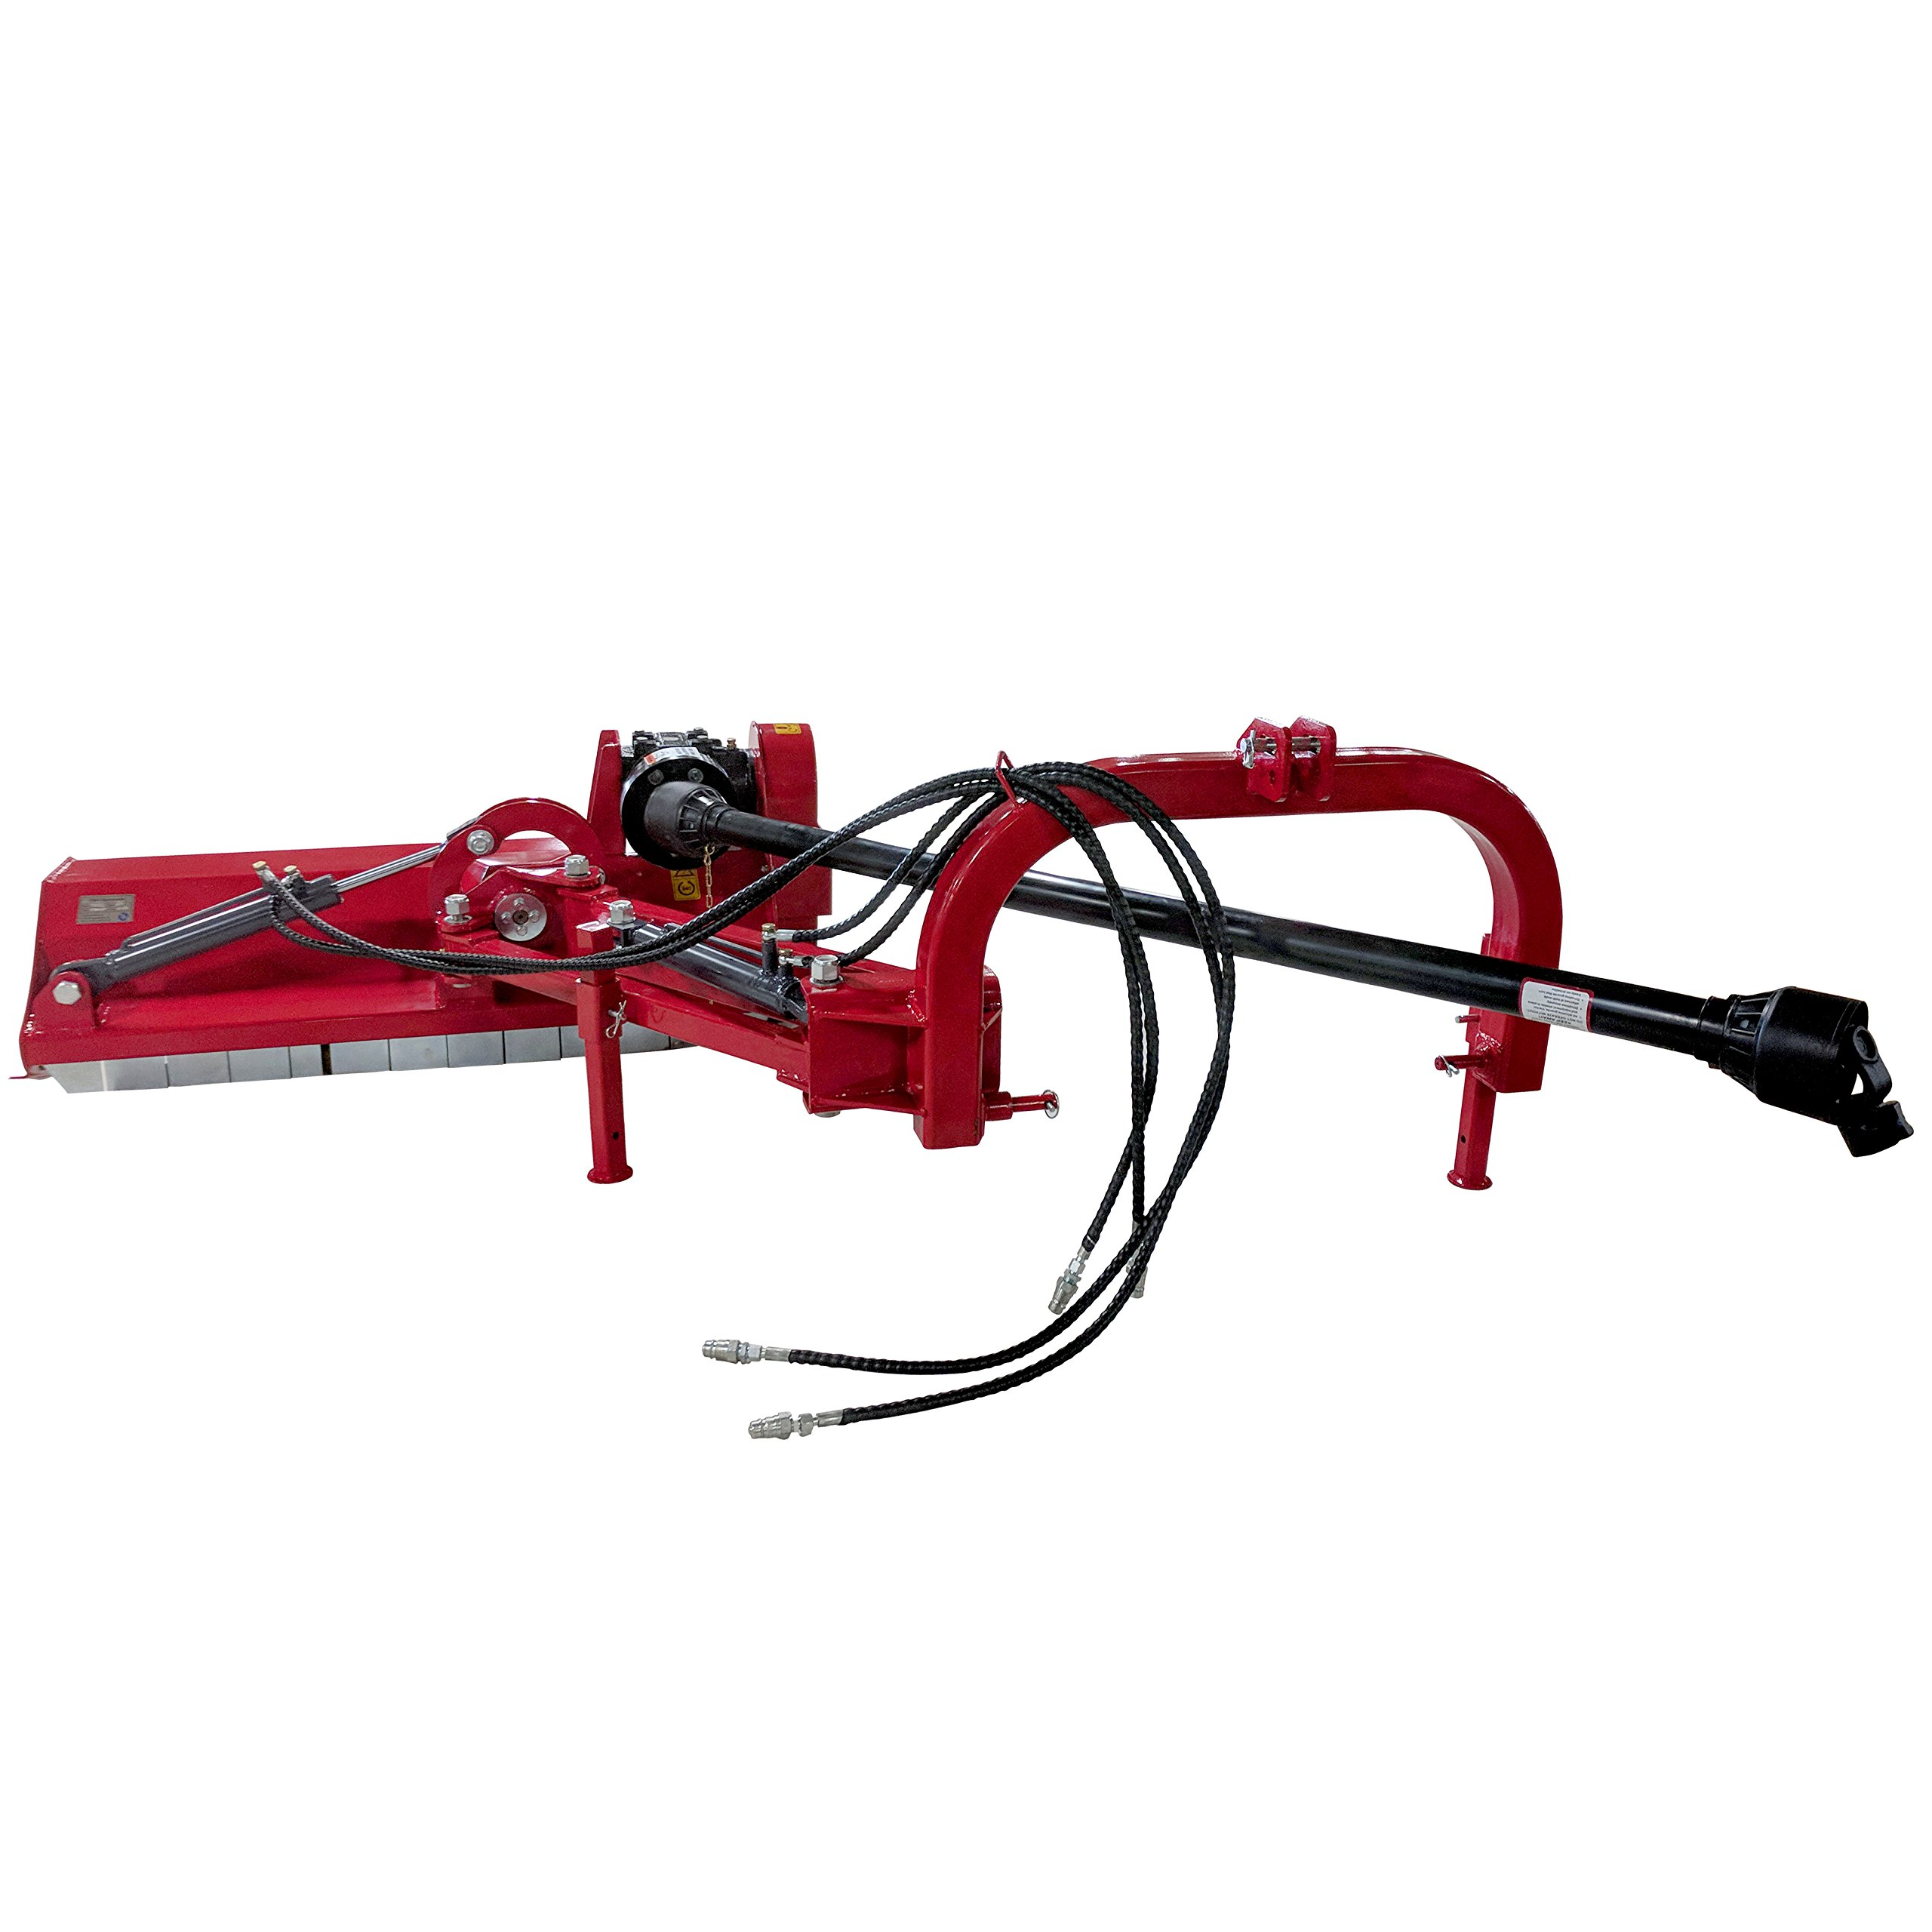 "Titan 48"" 3-Point Offset Flail Ditch Bank Mower"